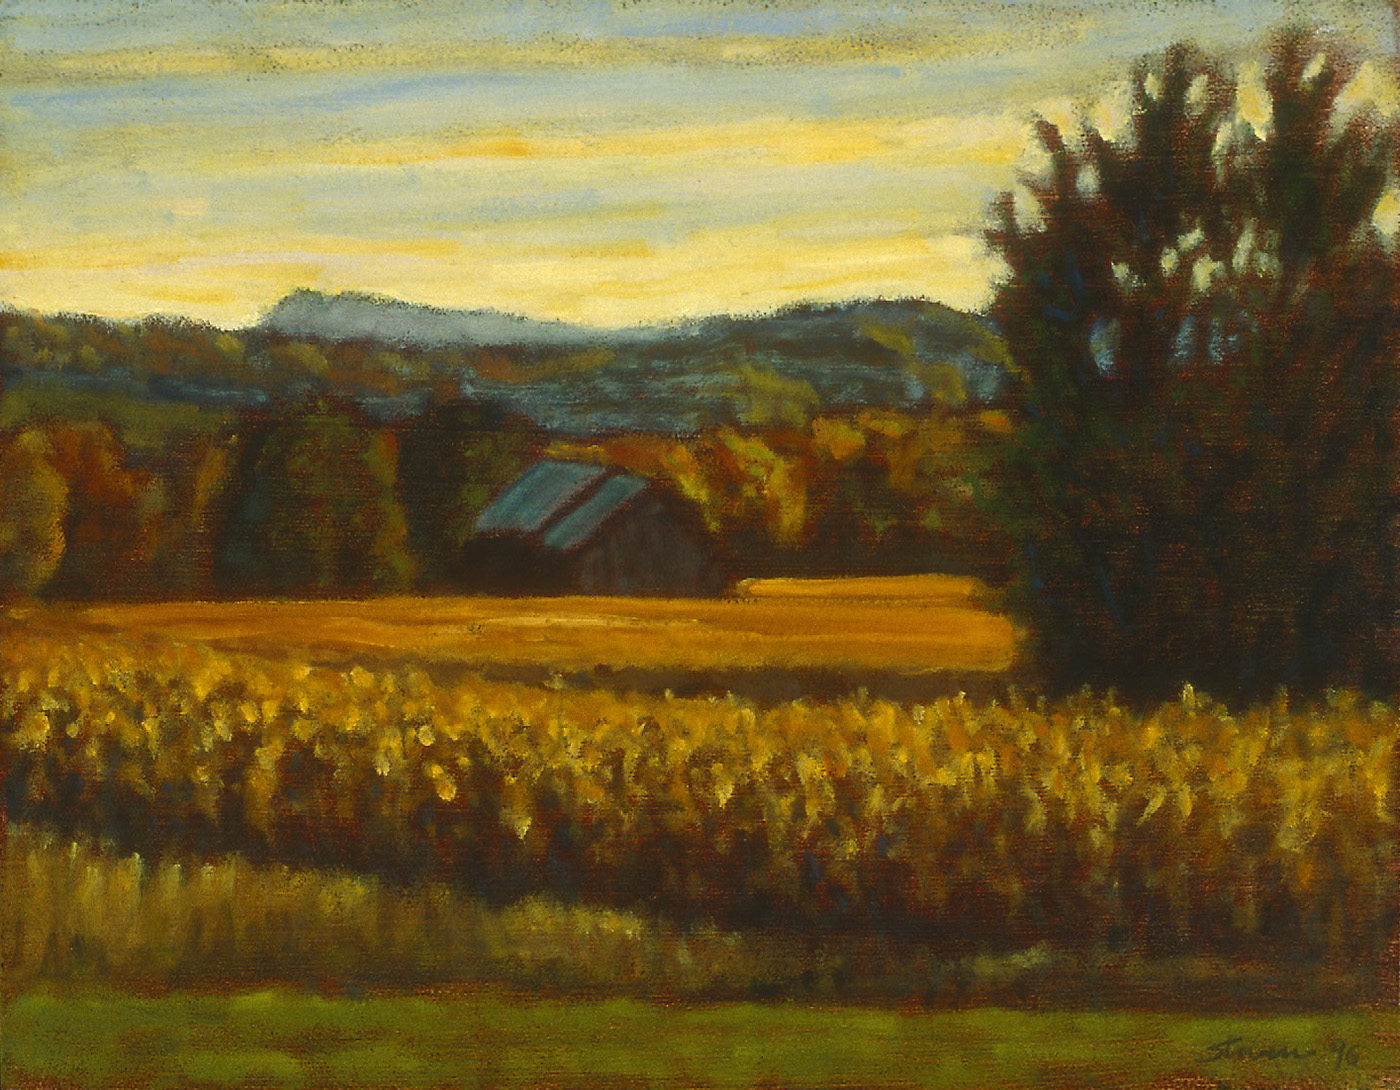 86-96   | oil on canvas | 12 x 15"